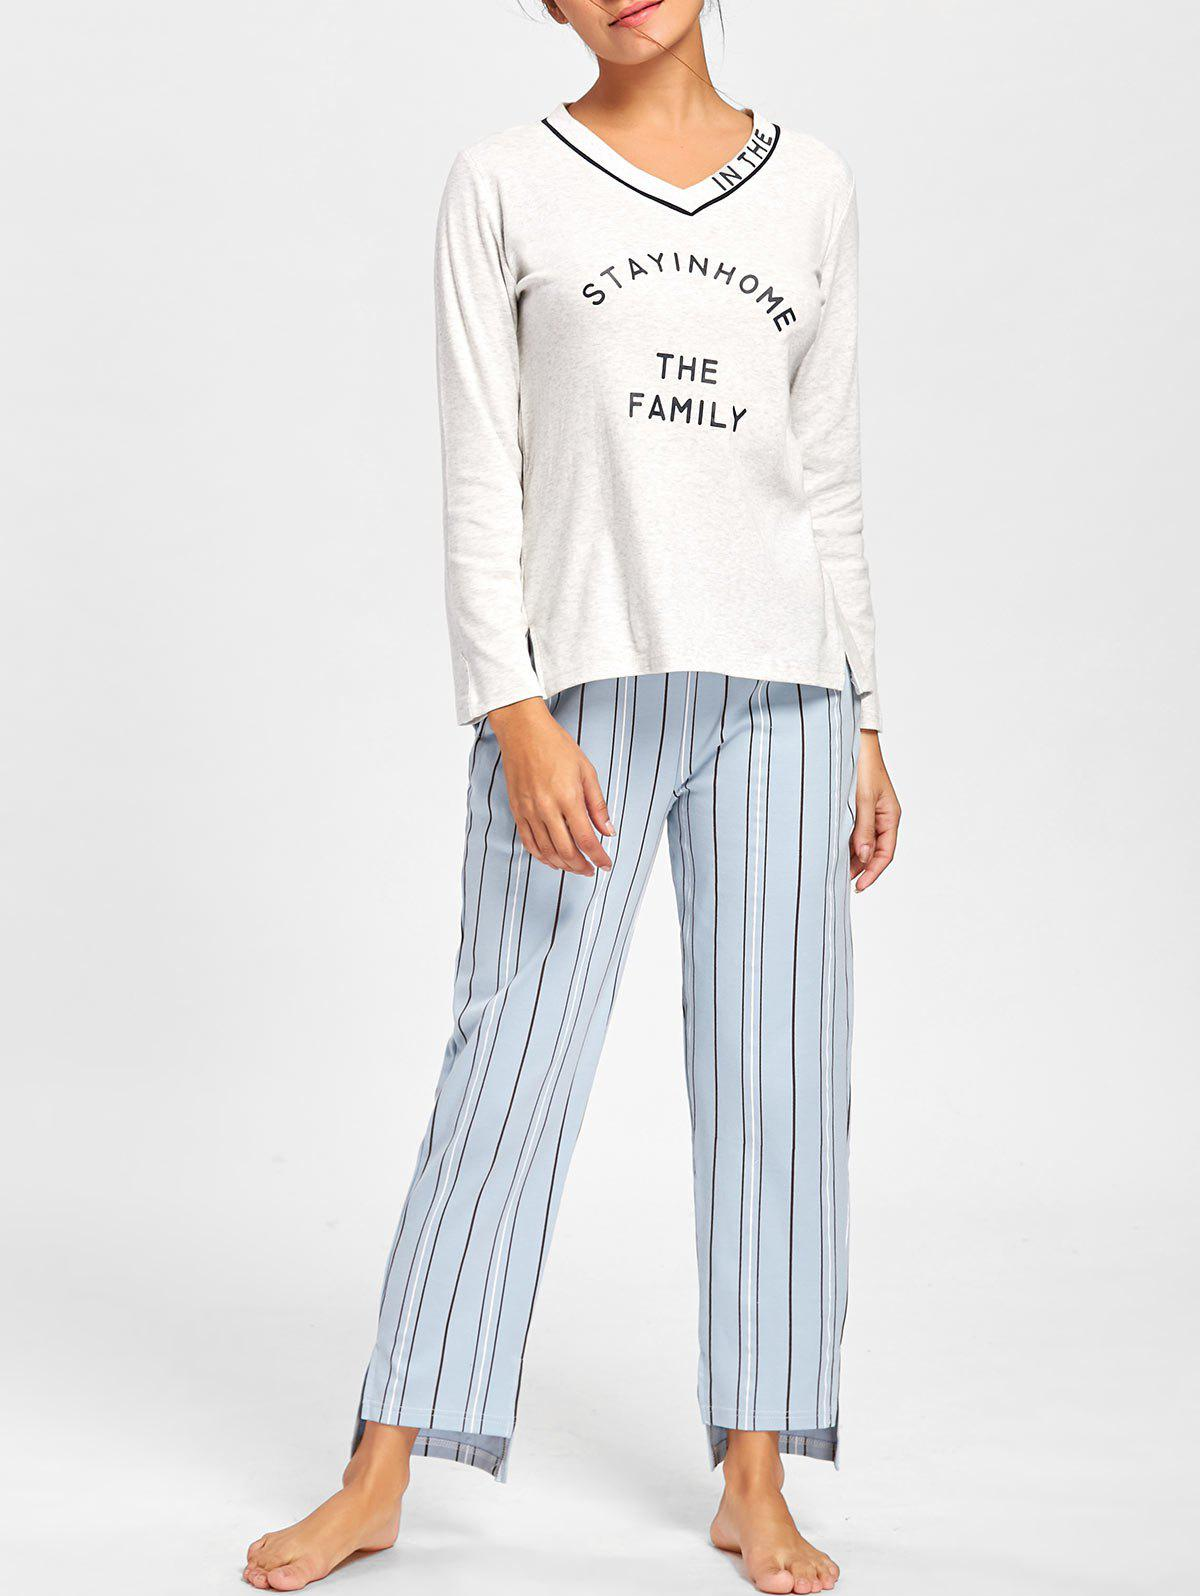 V Neck PJ Tee with Striped Pants - LIGHT GRAY M